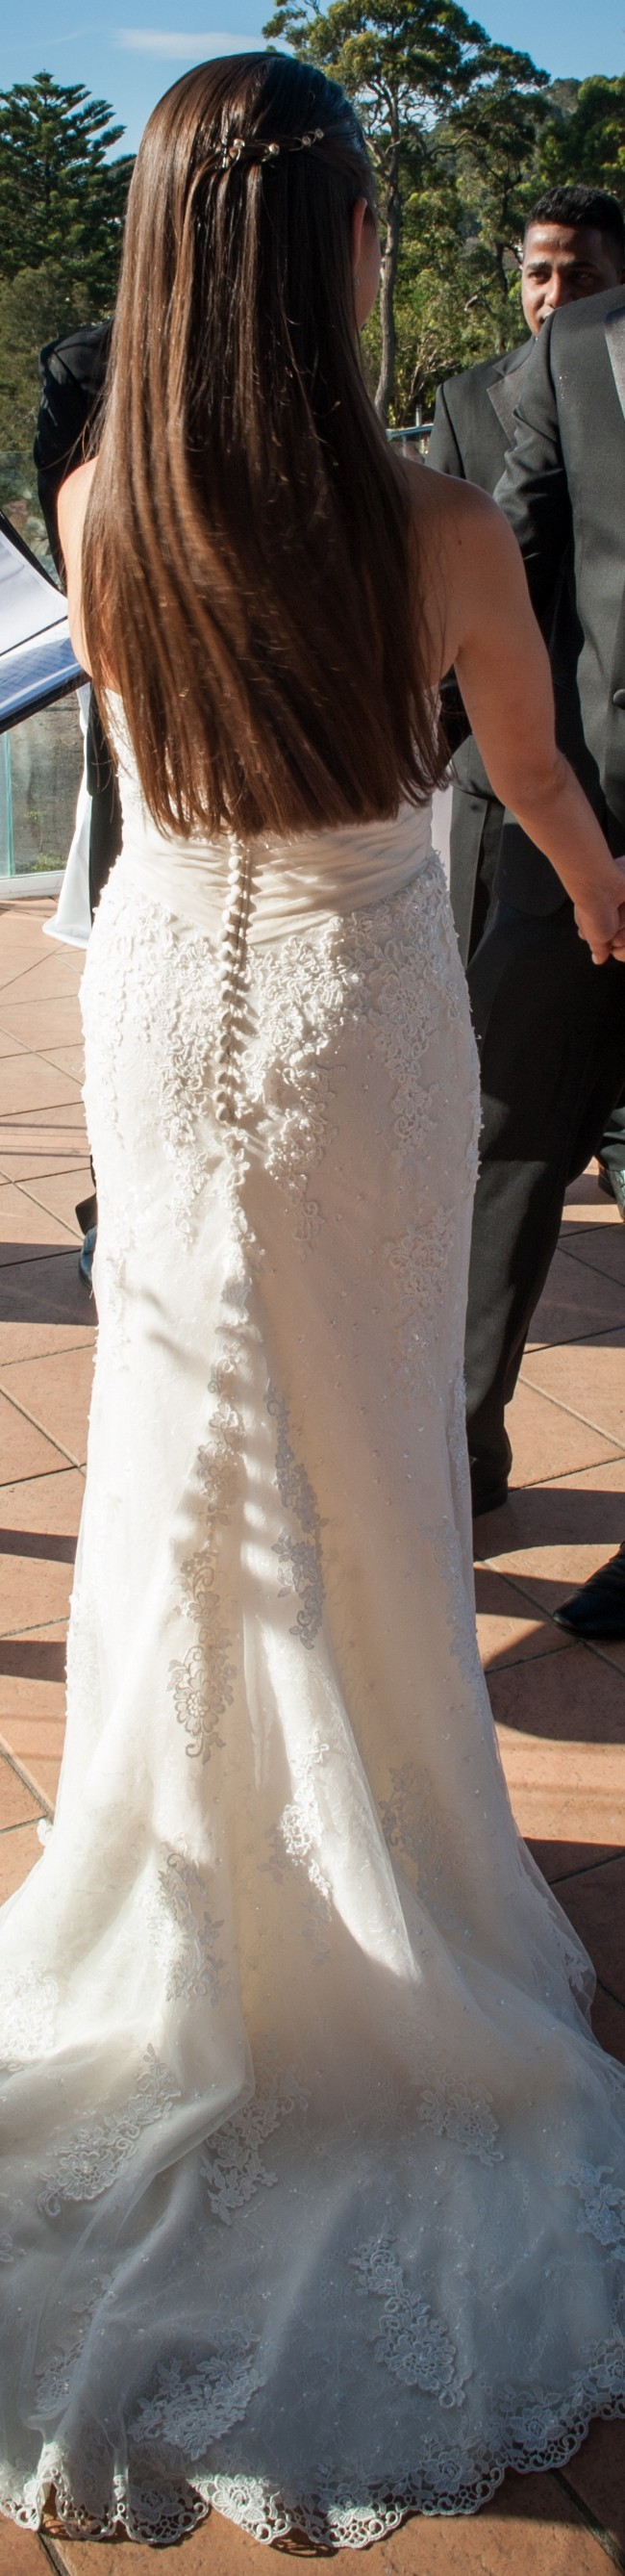 Madeline gardner mori lee second hand wedding dress on for Second hand mori lee wedding dresses